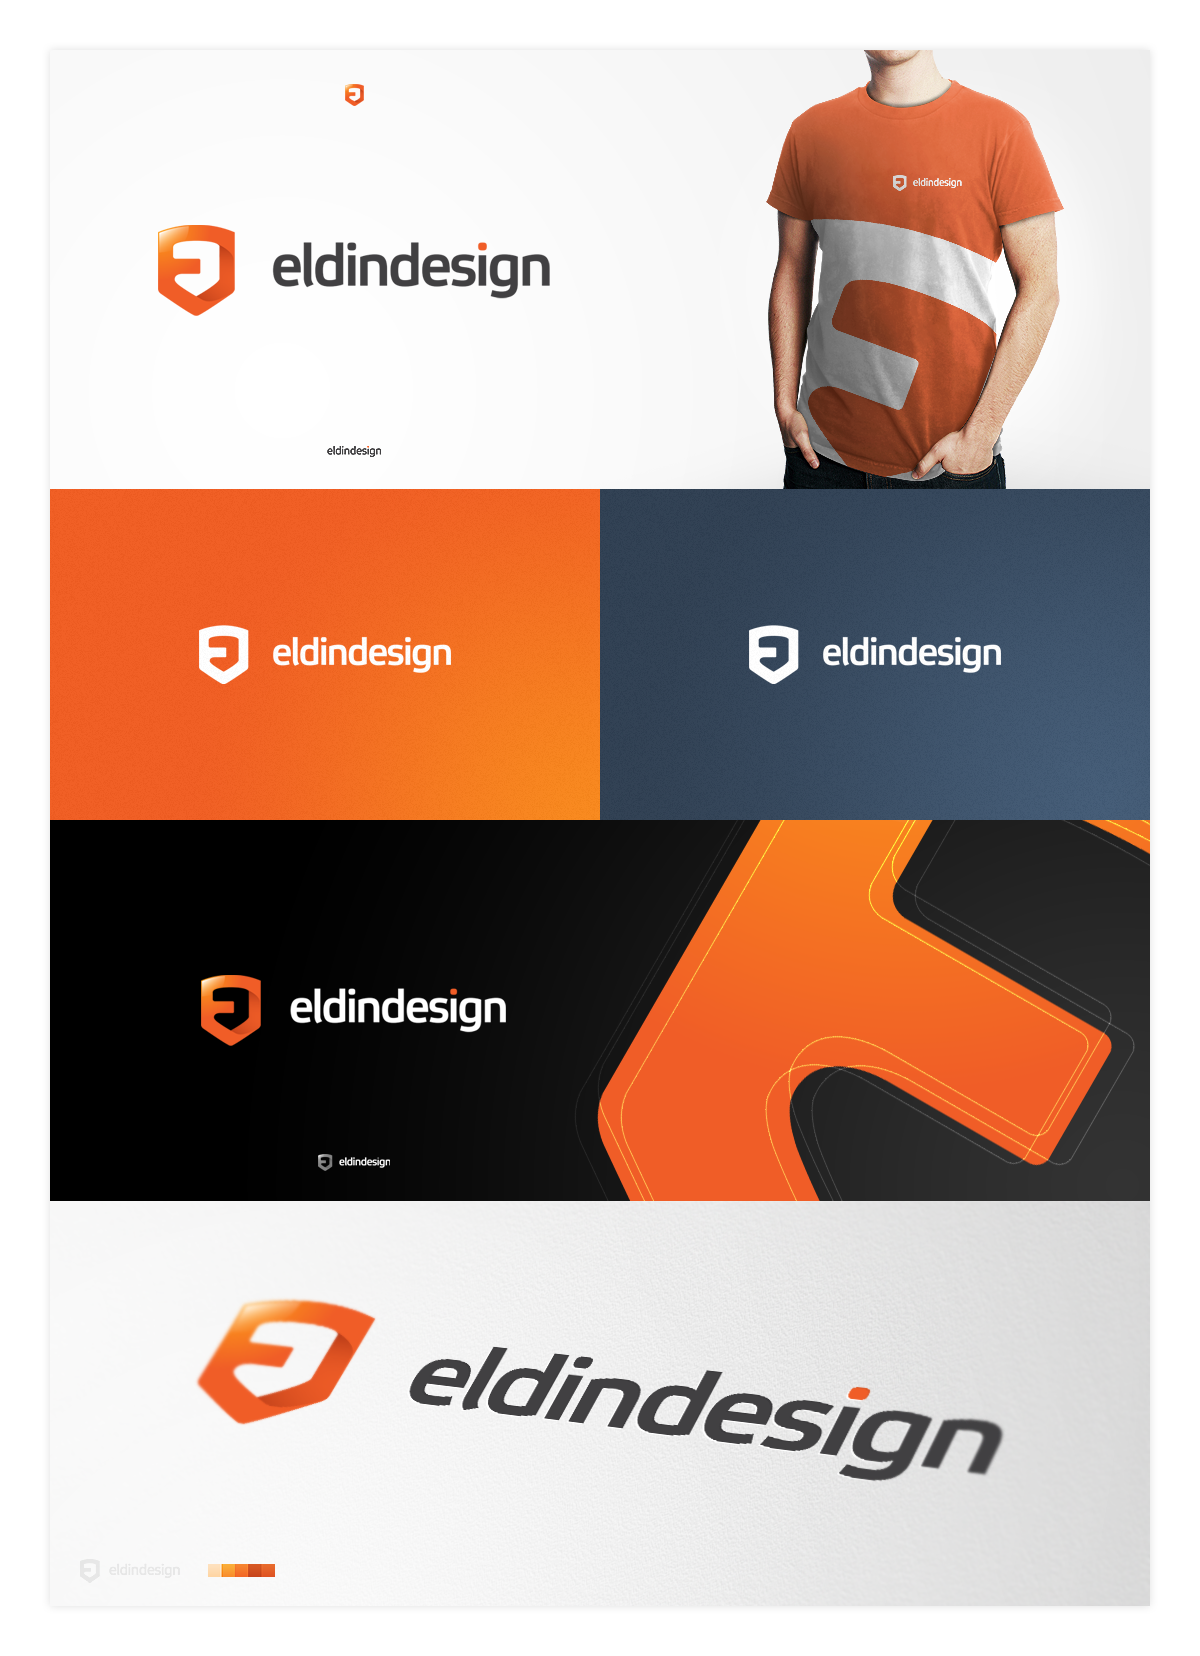 eldindesign final logotype by eLdIn94